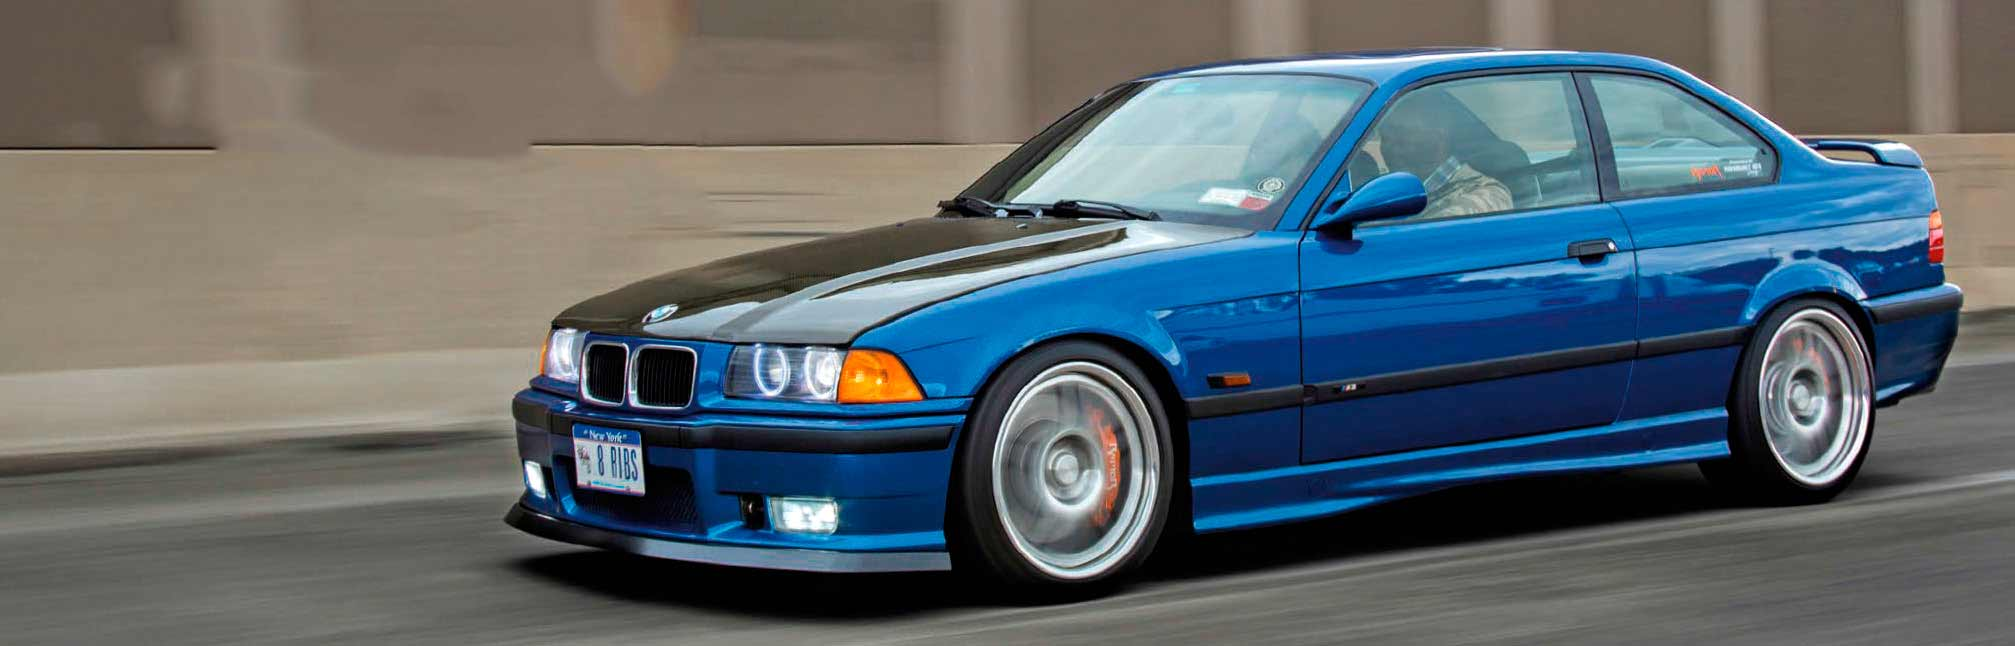 Supercharged 1995 bmw m3 e36 458whp